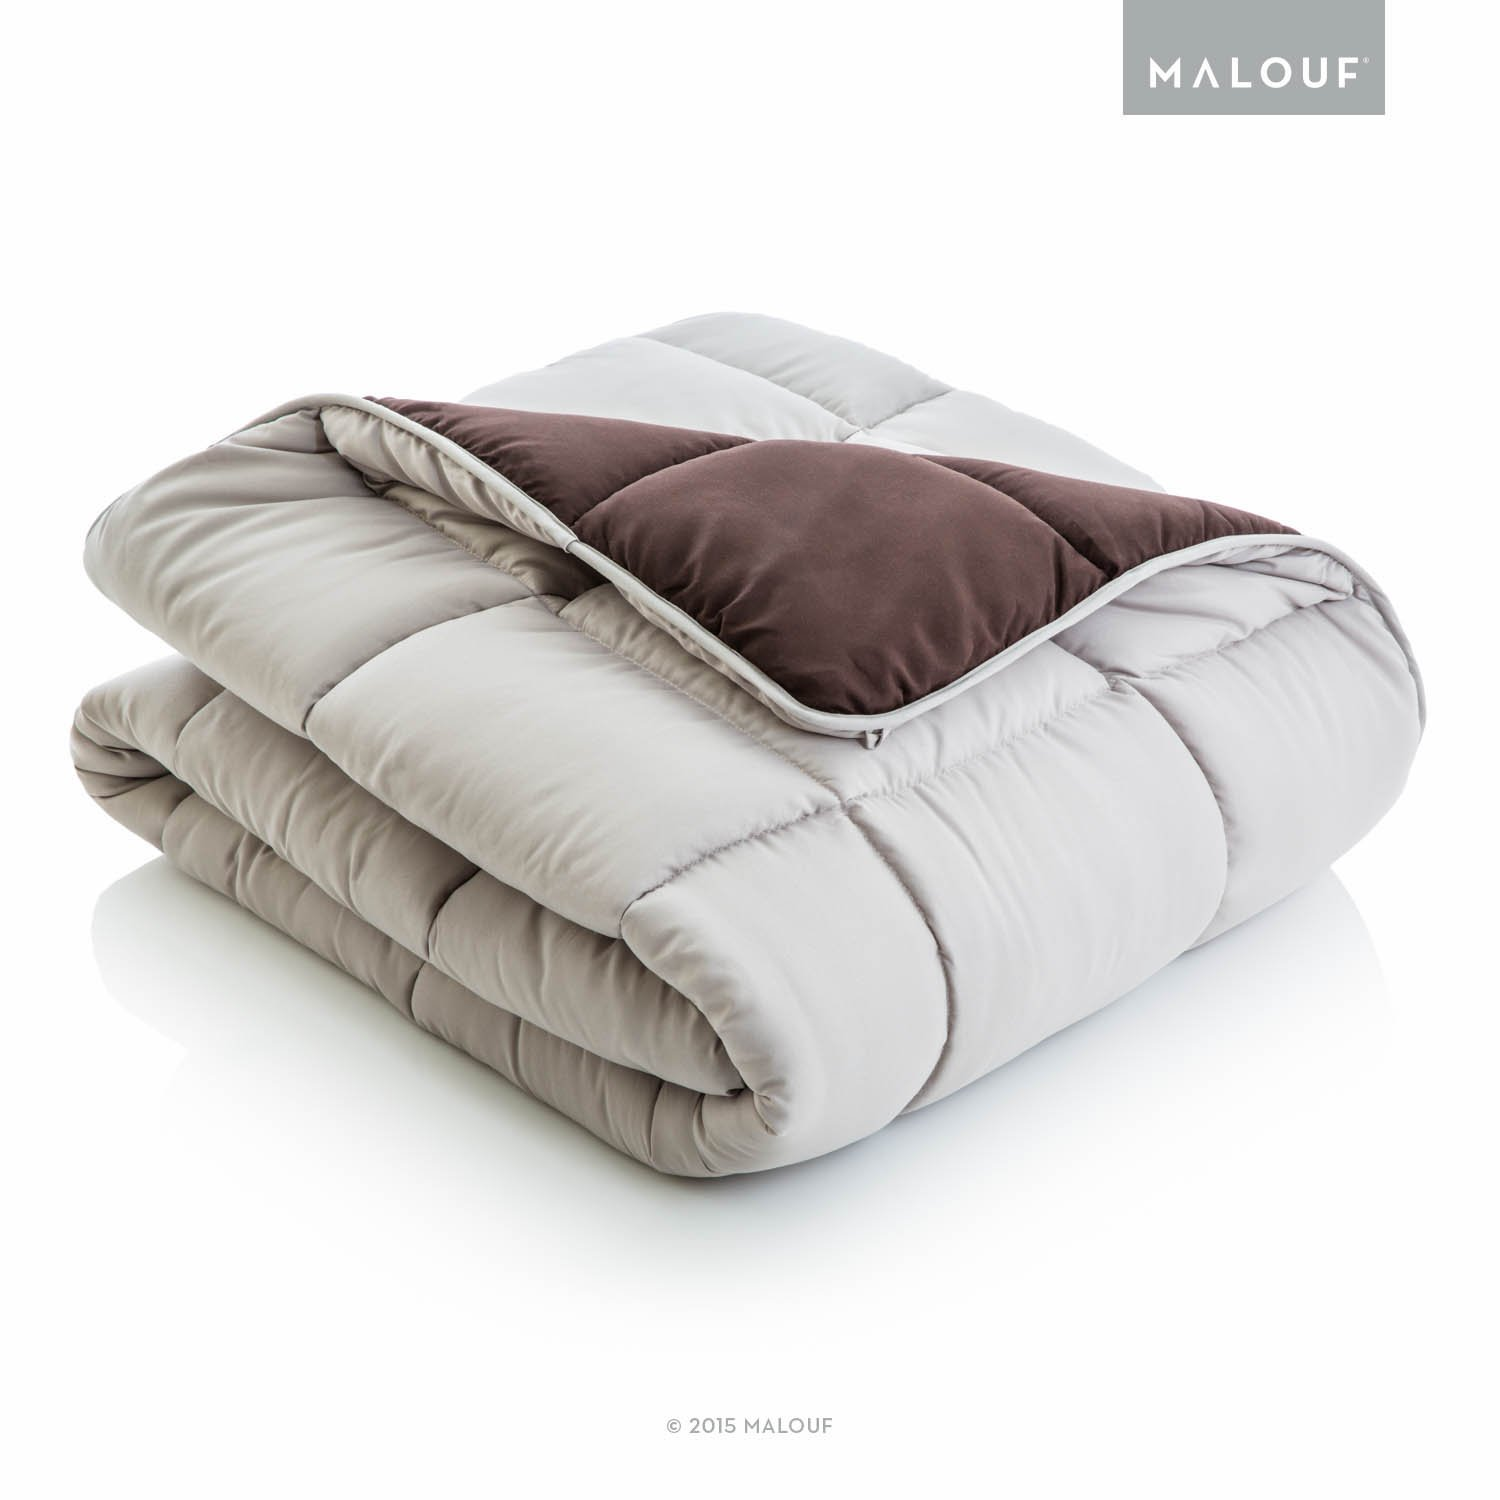 WOVEN Reversible Bed In a Bag Complete Bedding Set - Split Queen - Driftwood/Coffee by MALOUF (Image #3)